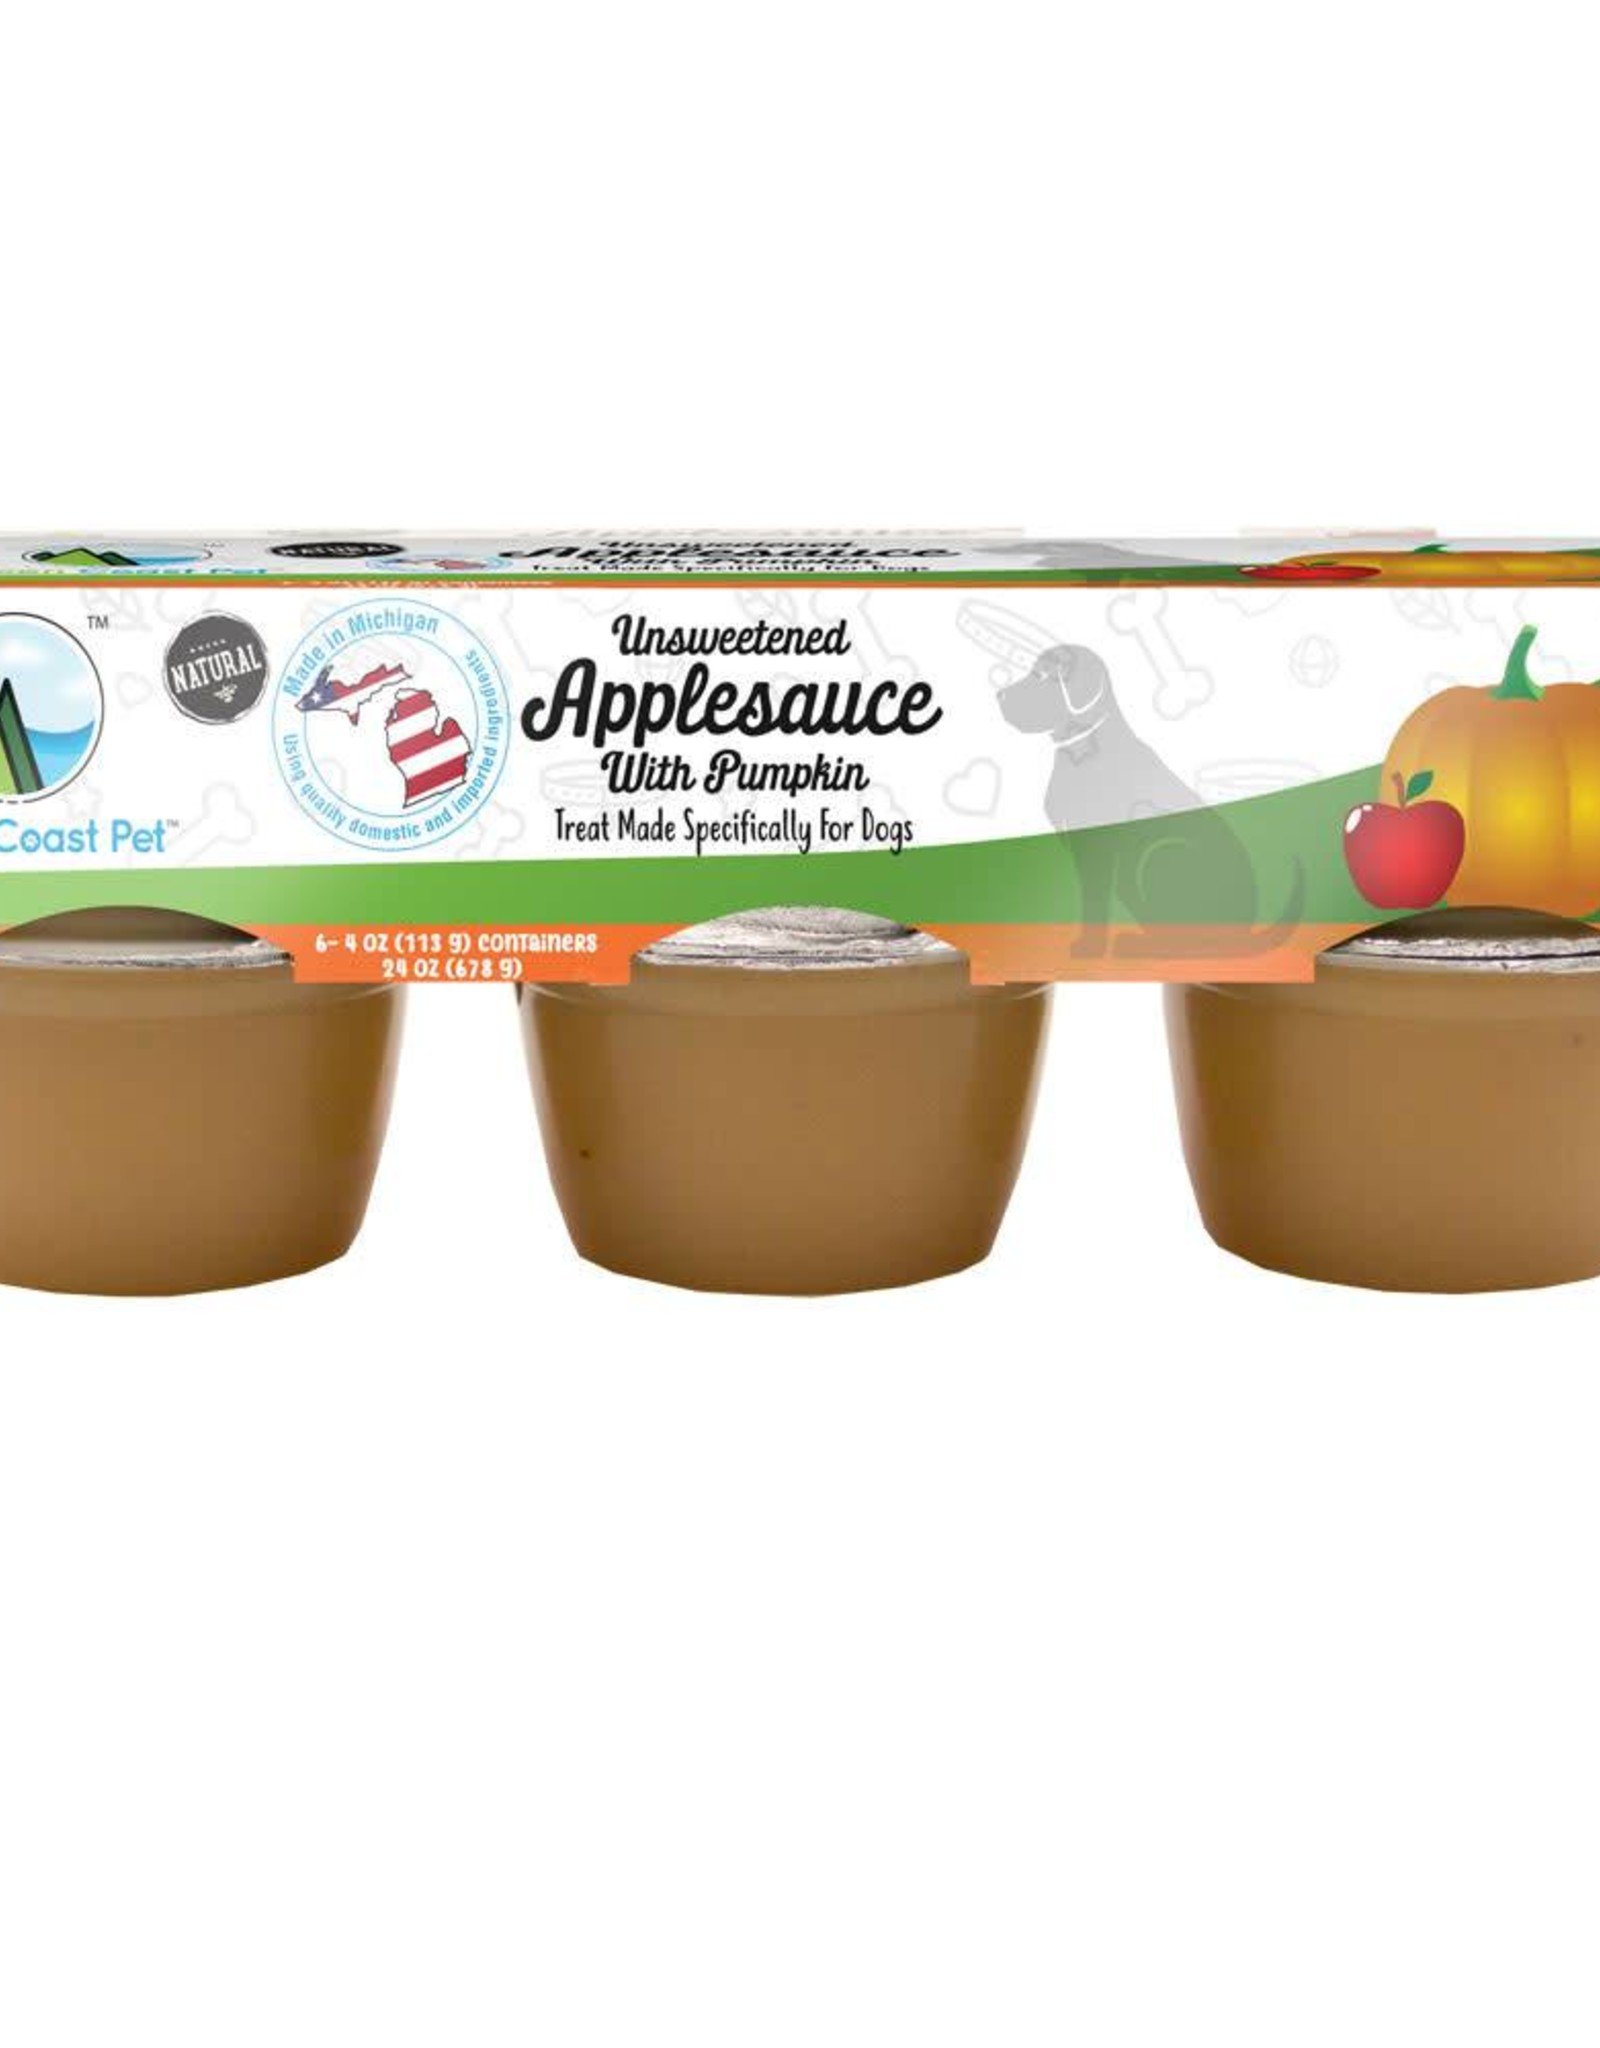 Green Coast Pet Green Coastal Pet Applesauce with Pumpkin 6pk